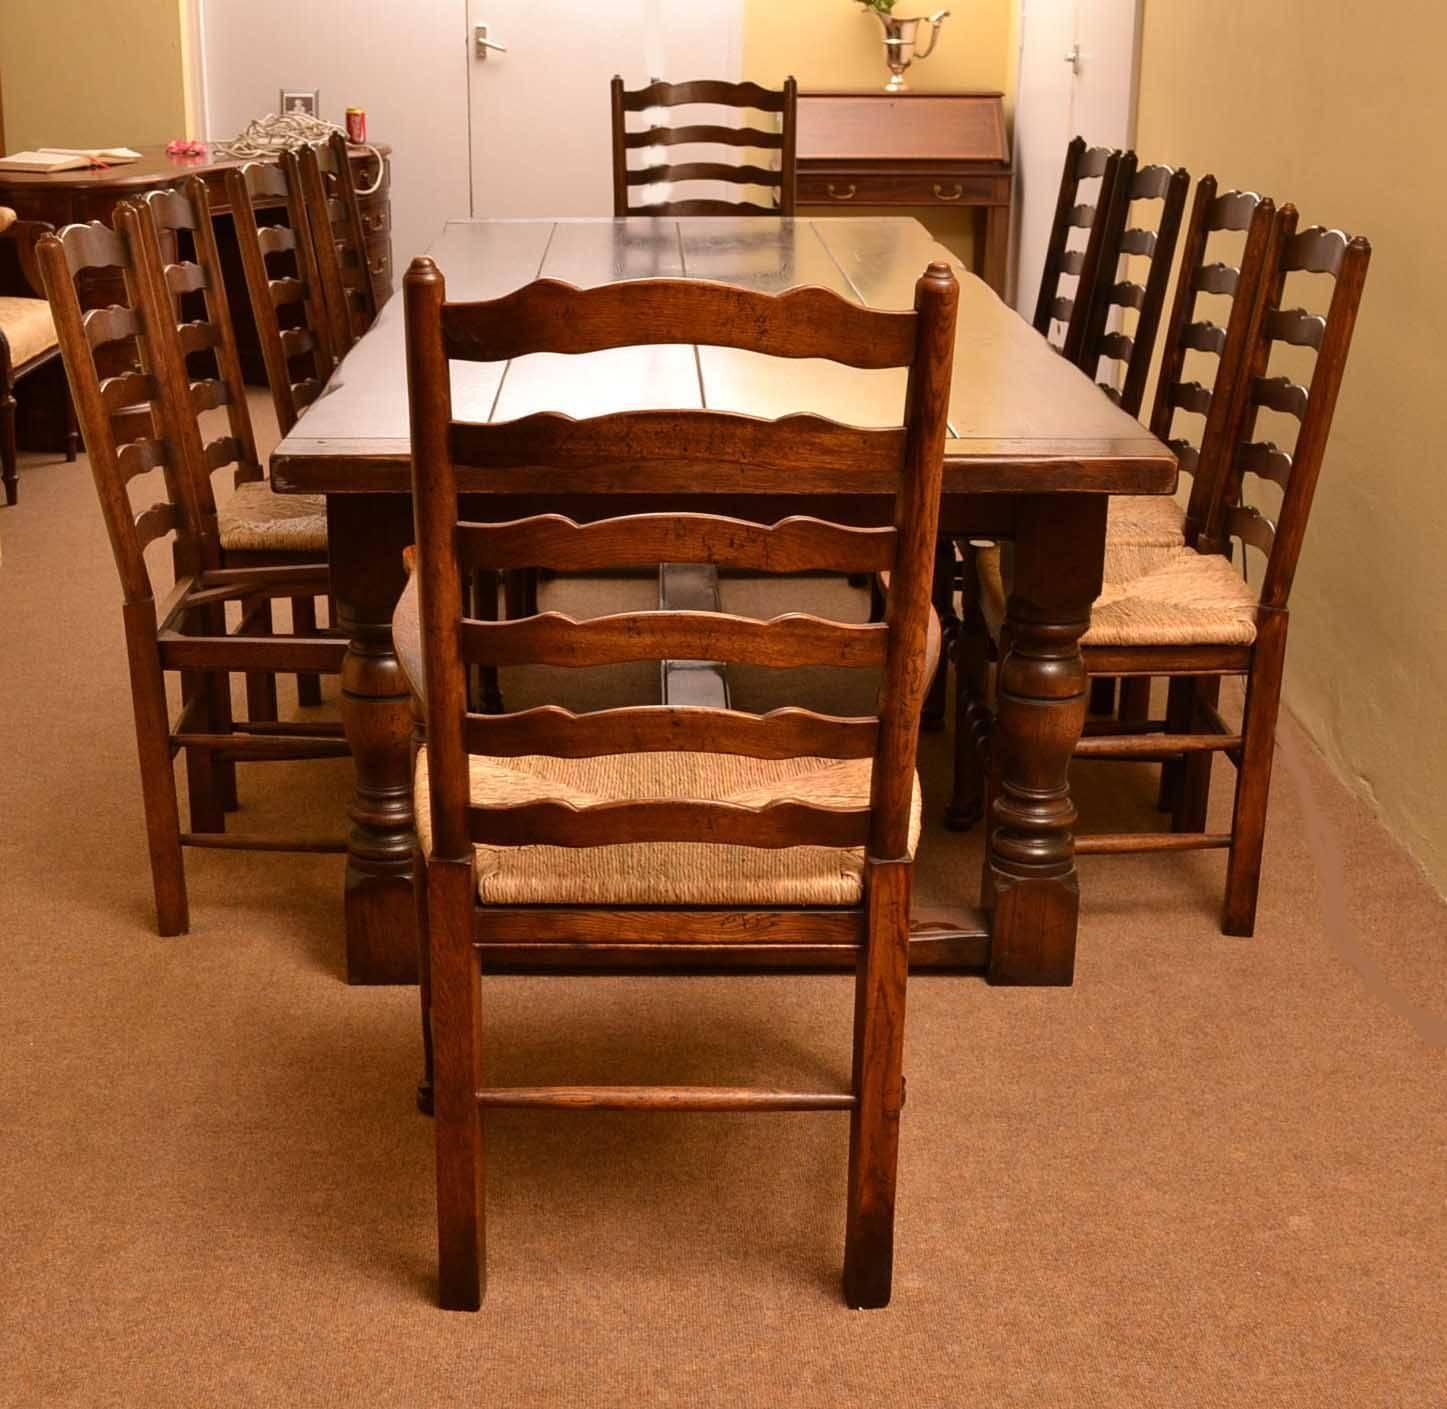 10 chair dining room set bespoke solid oak refectory dining table and ten chairs 7257